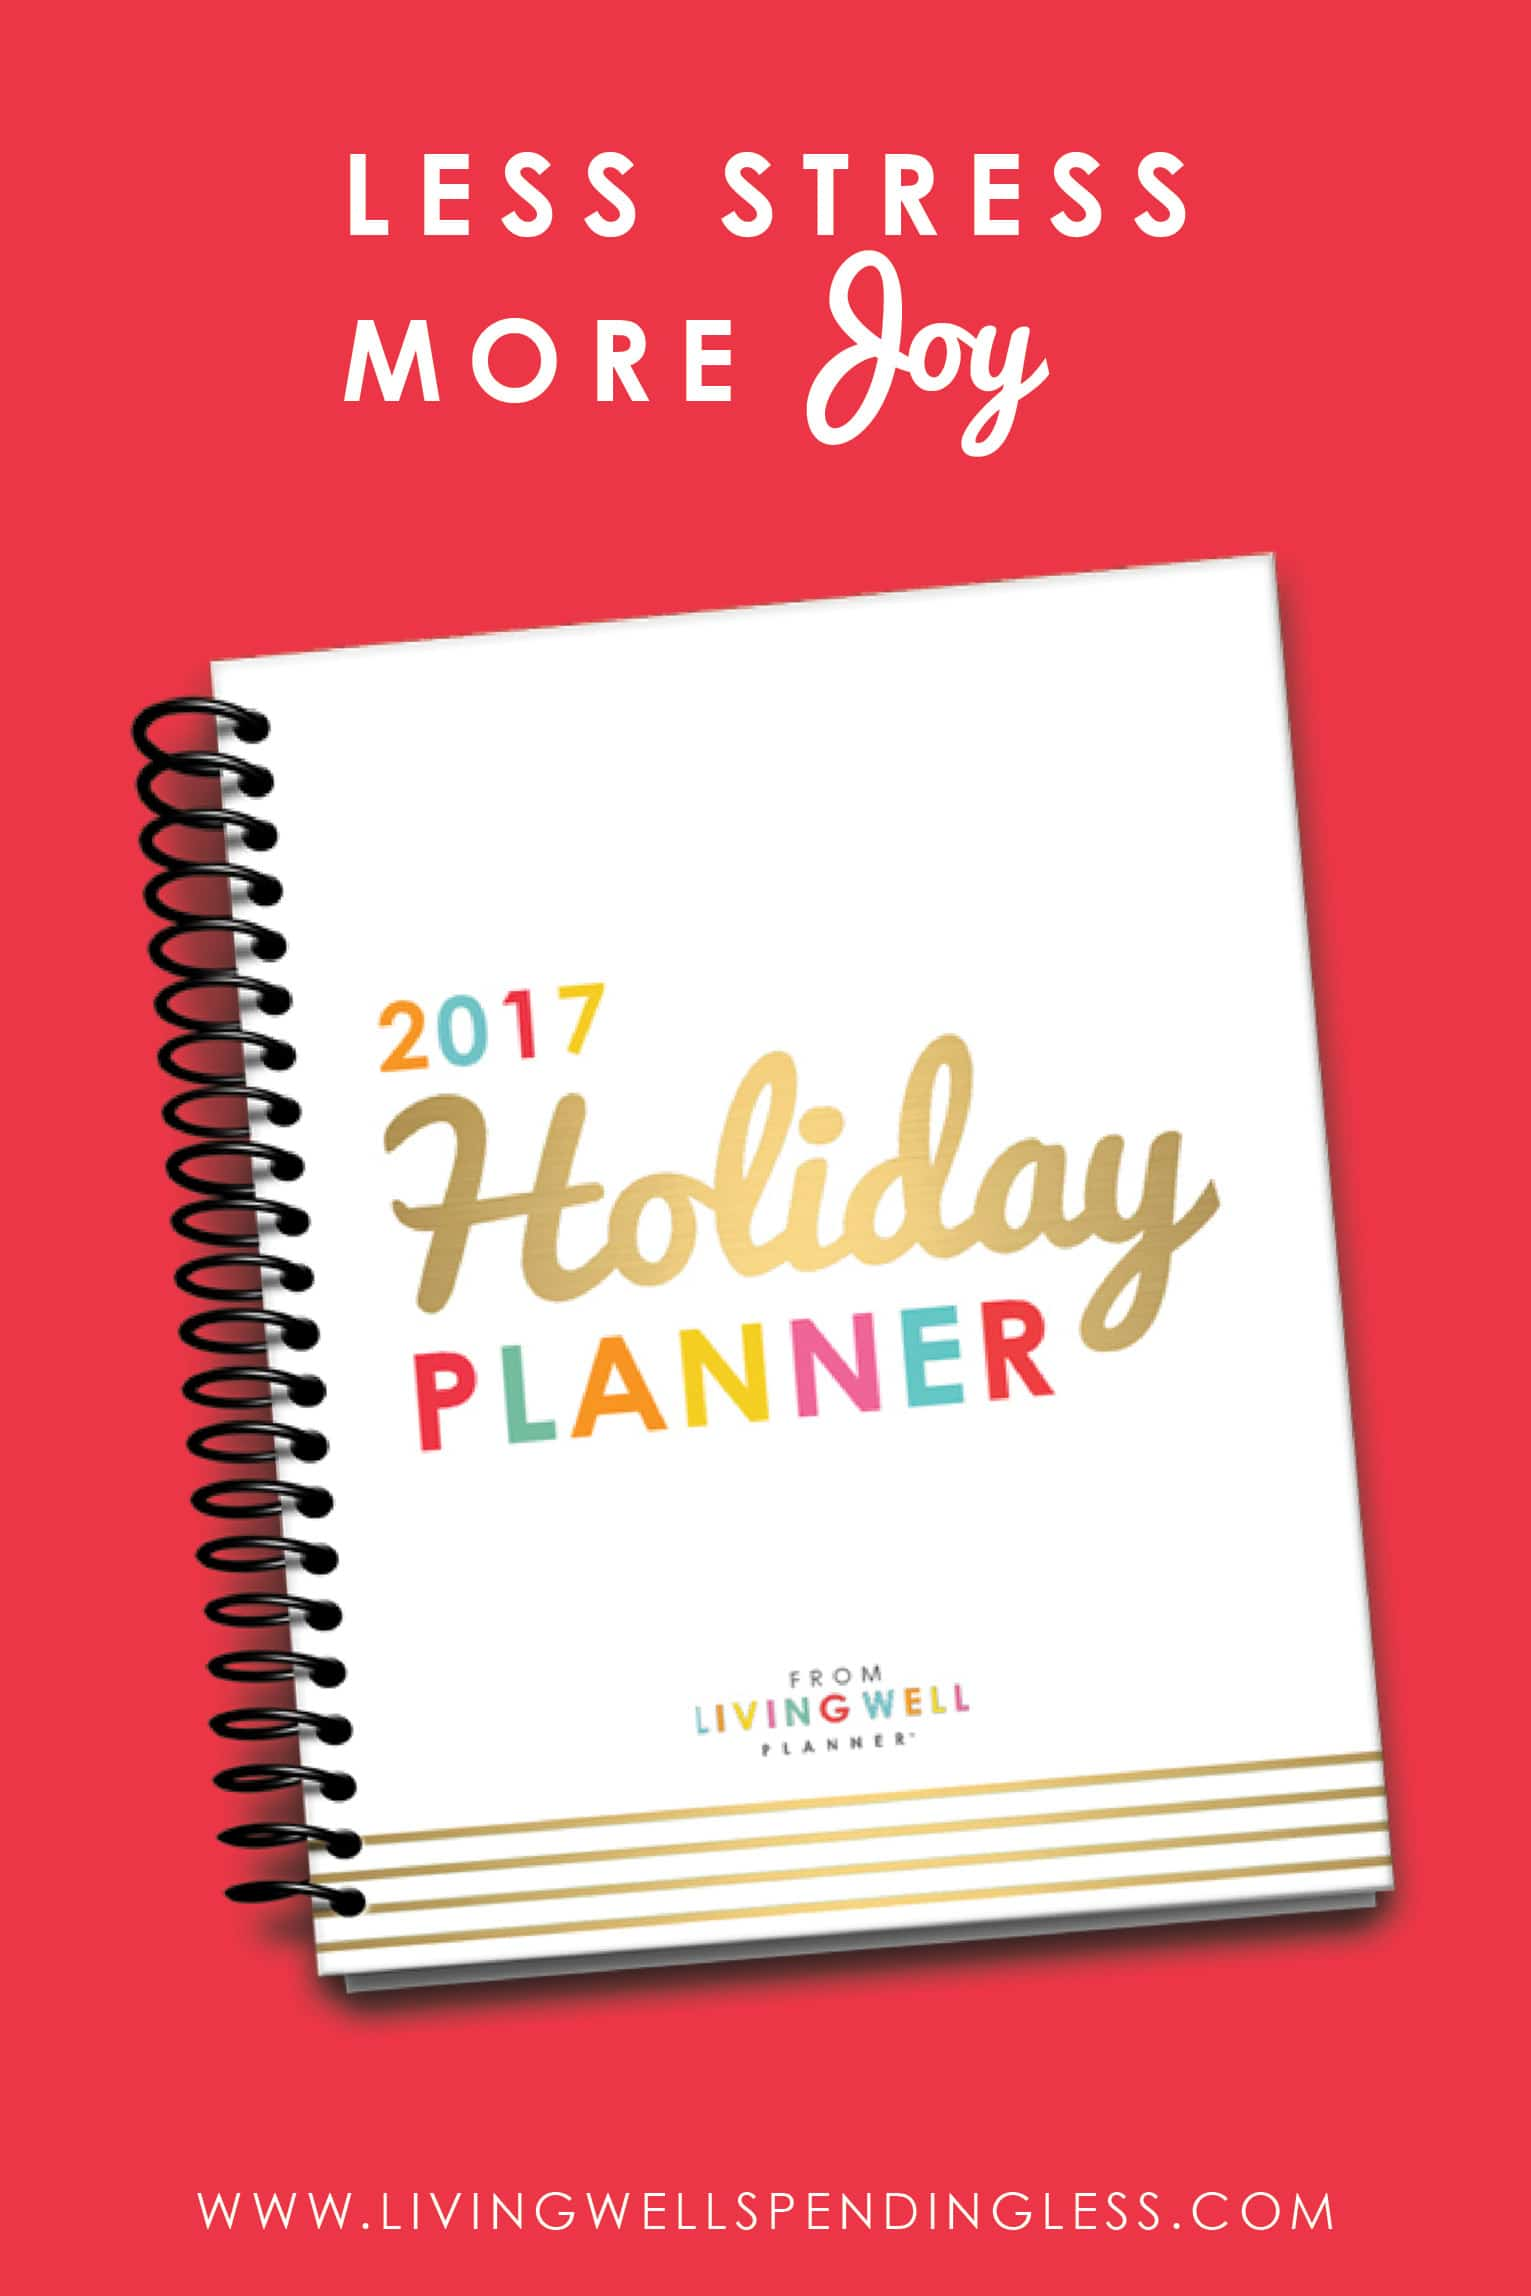 Use the 2017 Holiday Planner to put the joy back in the holidays!